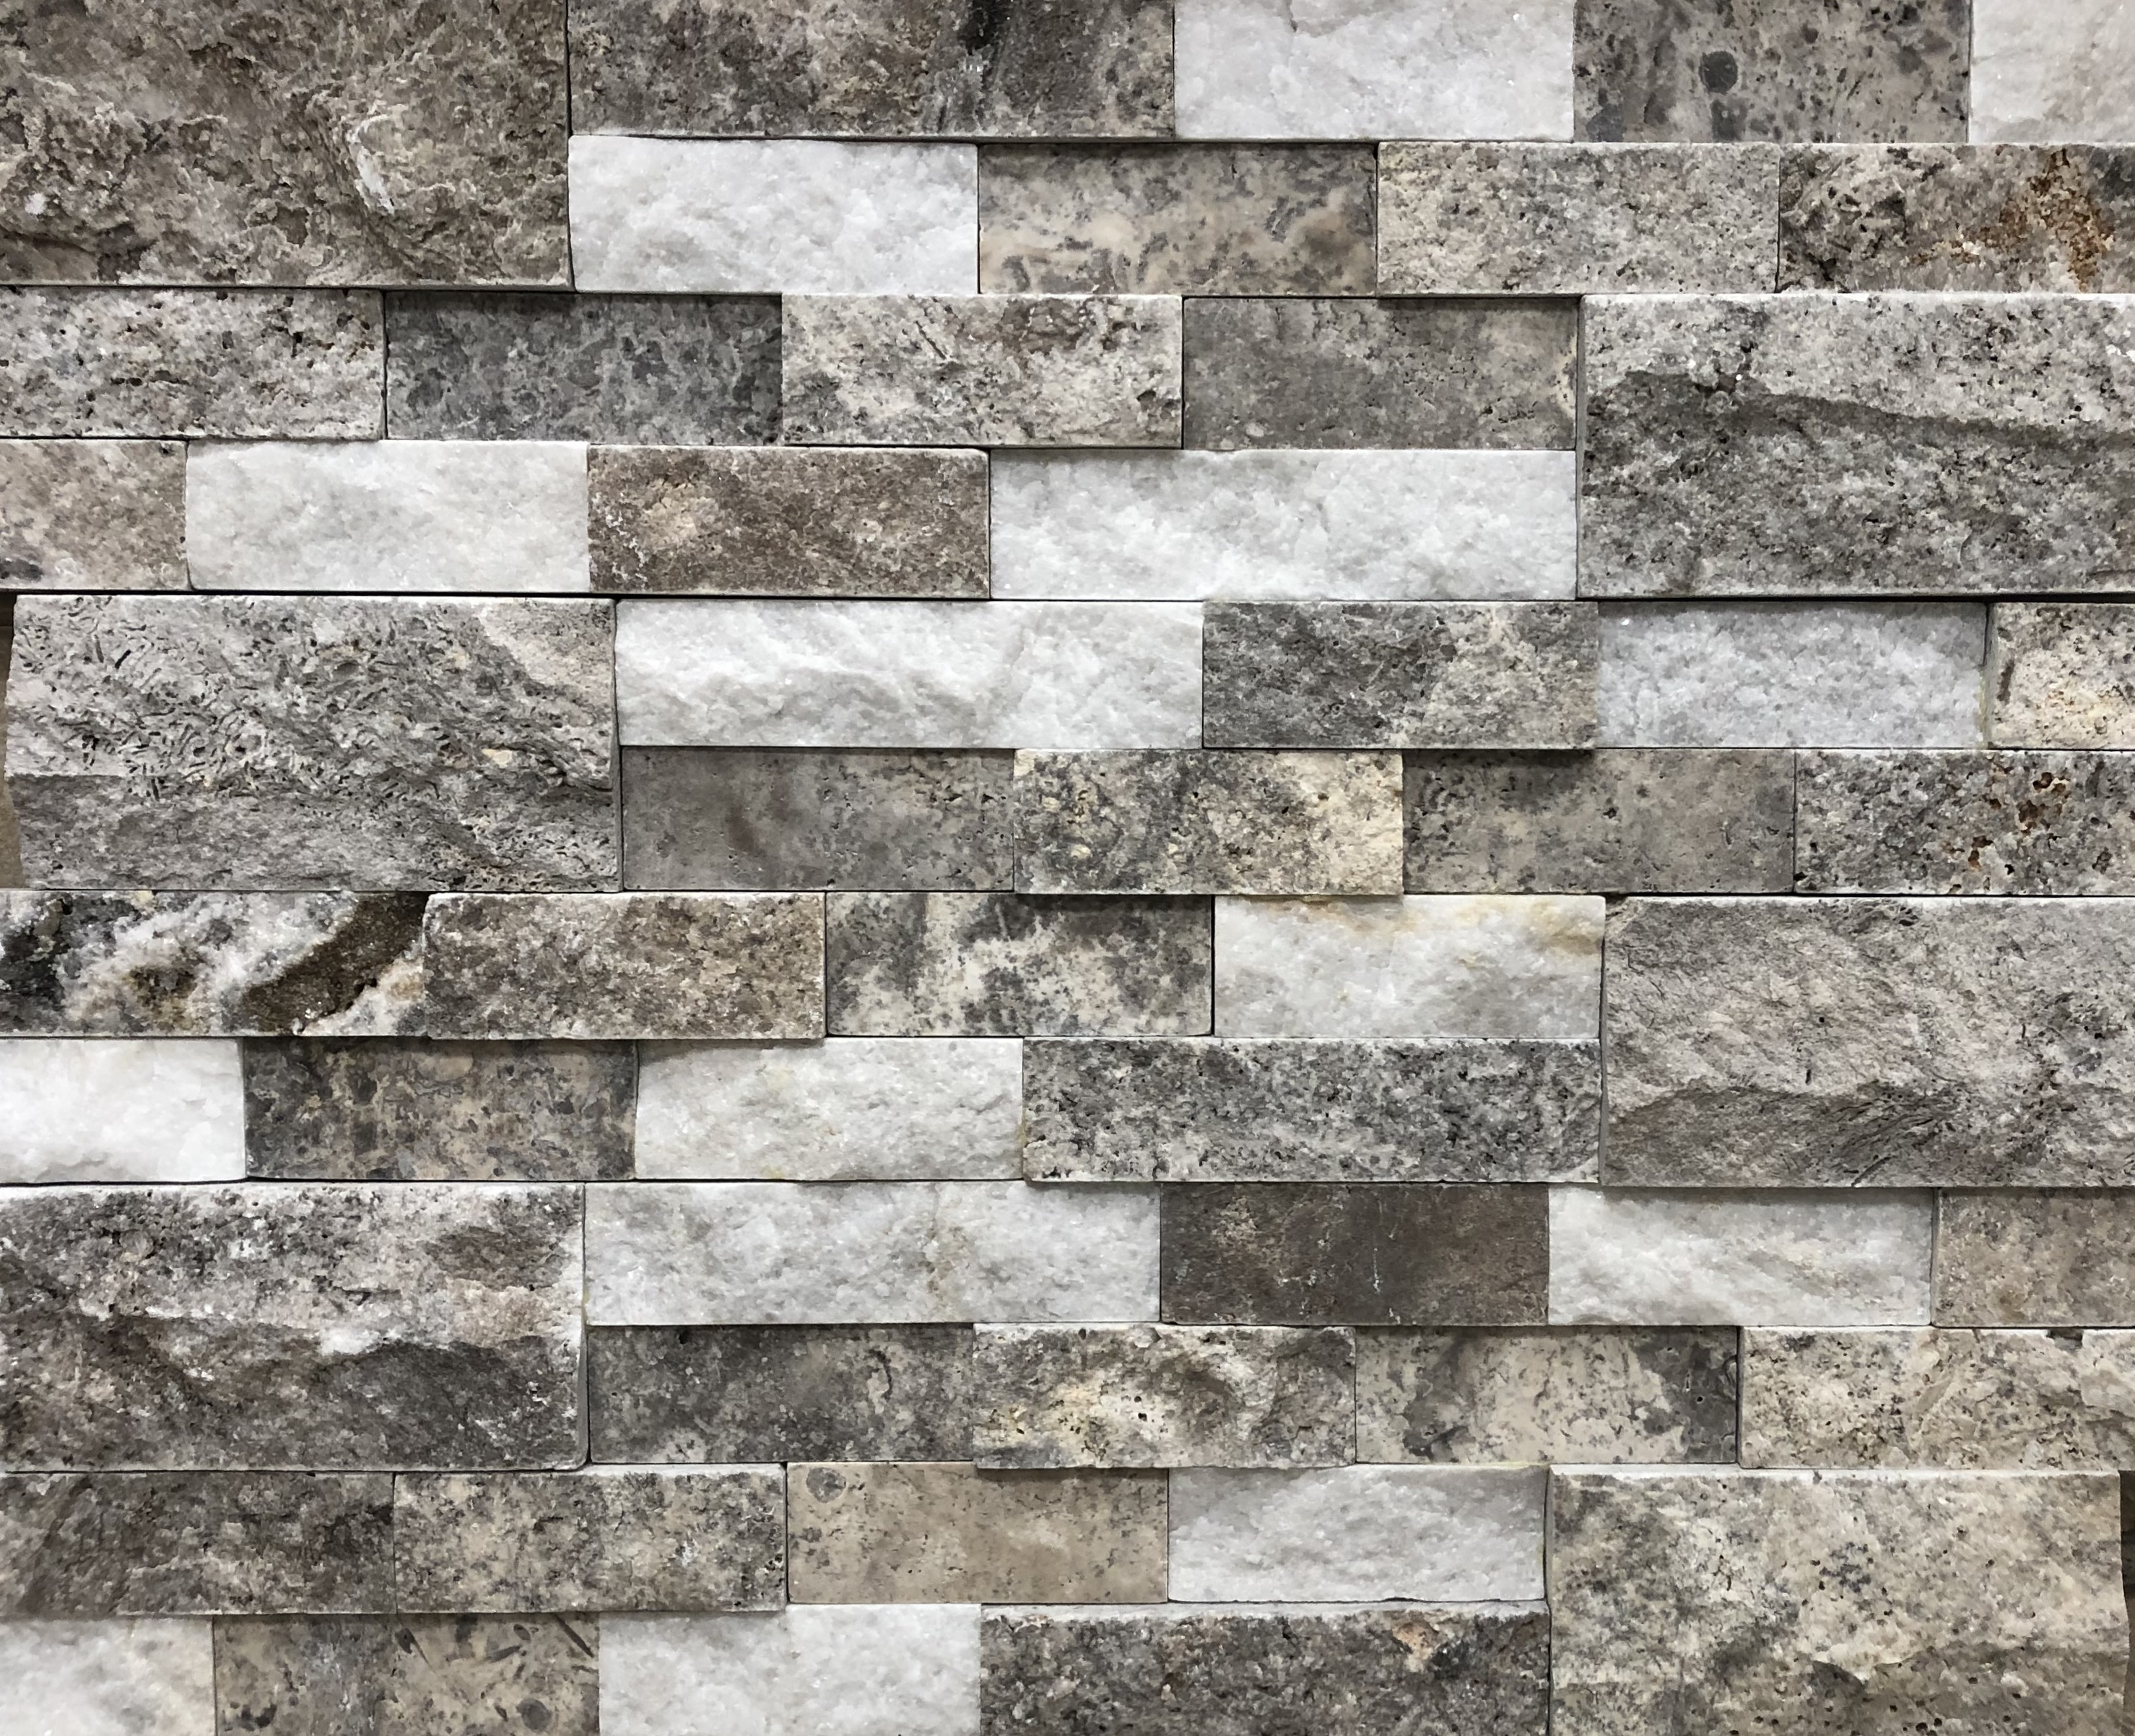 Silverado Mix (silver travertine and white marble)